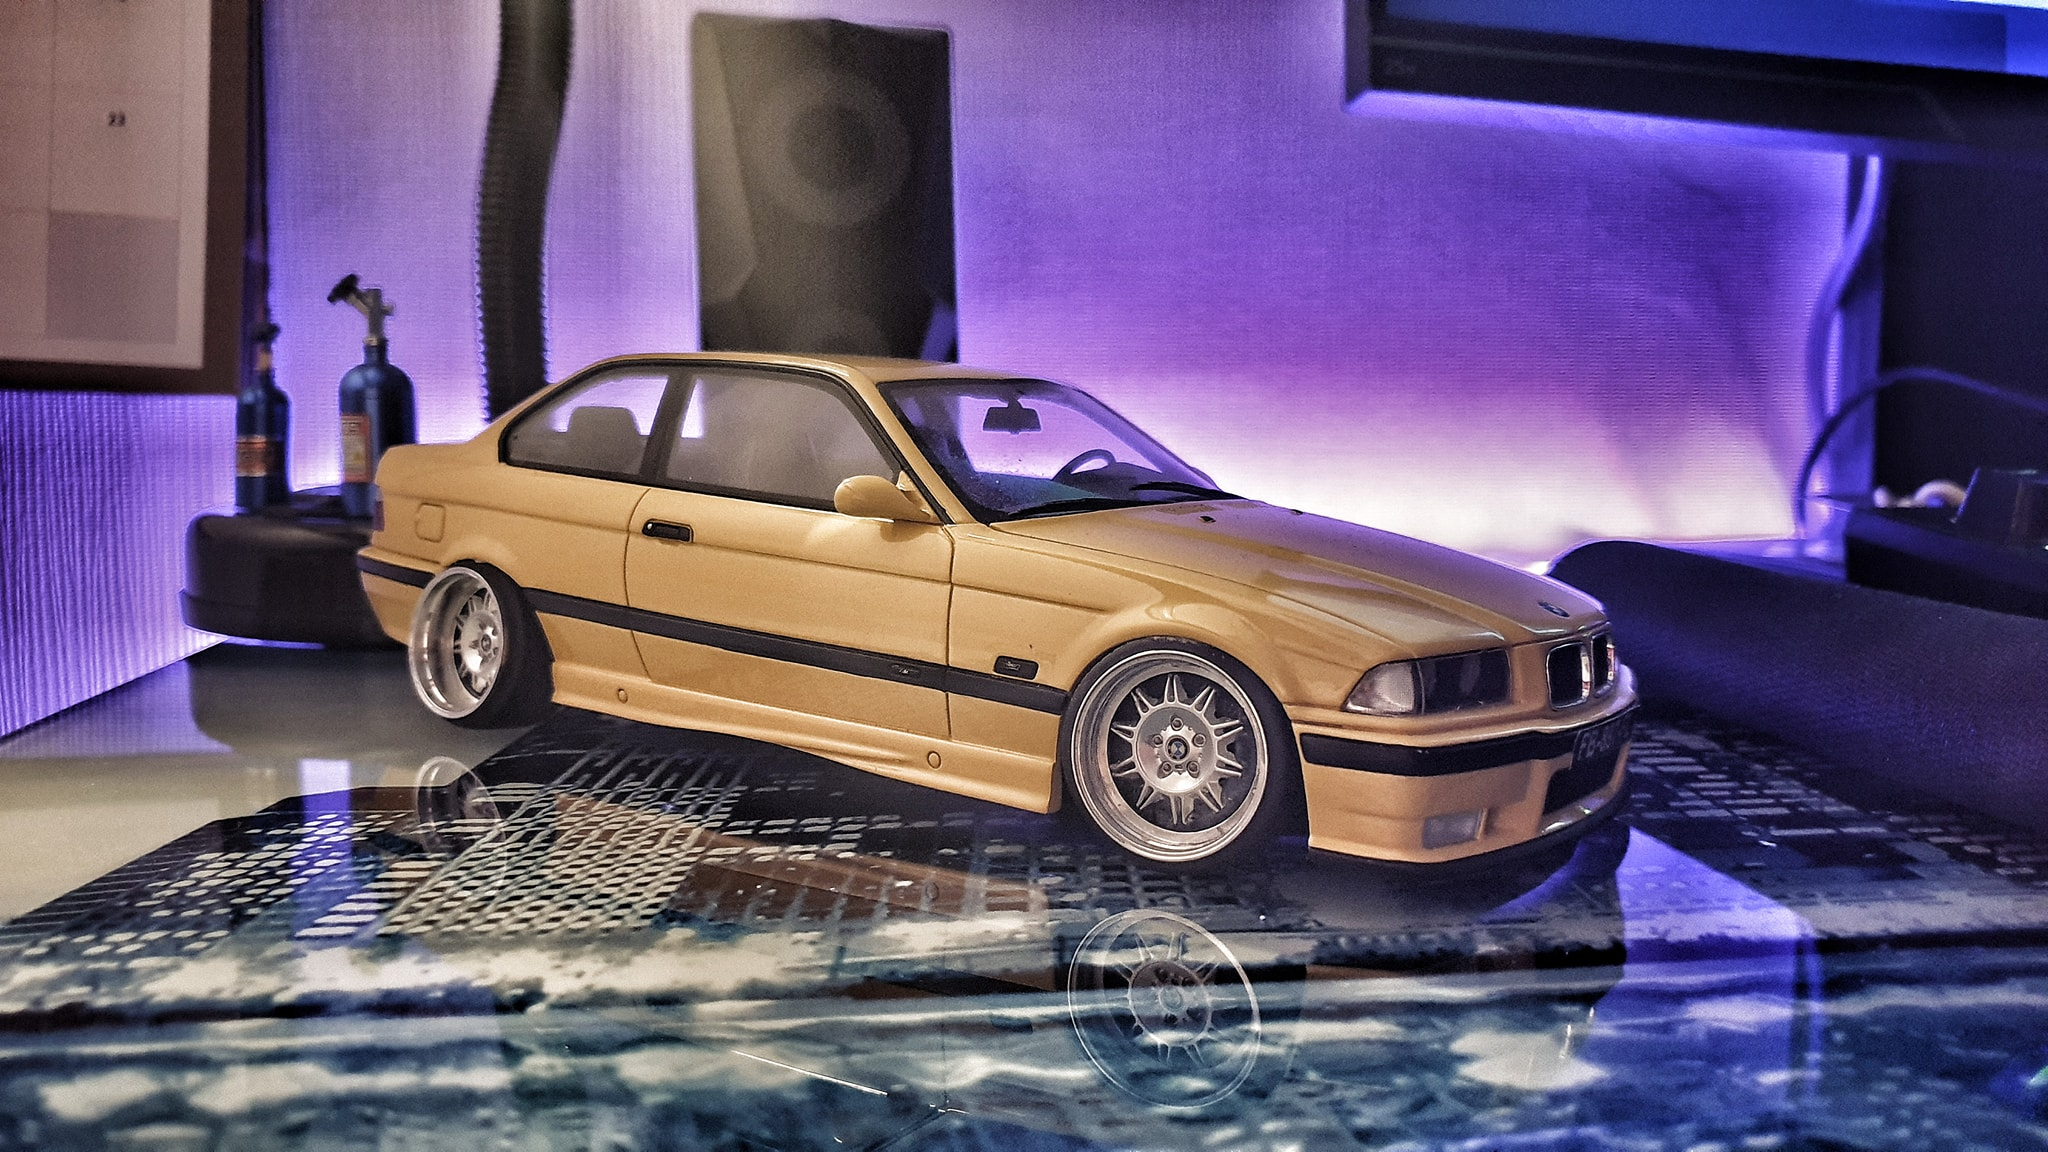 Bmw M3 E36 1/18 Ottomobile jaune jantes a deport tuning miniature